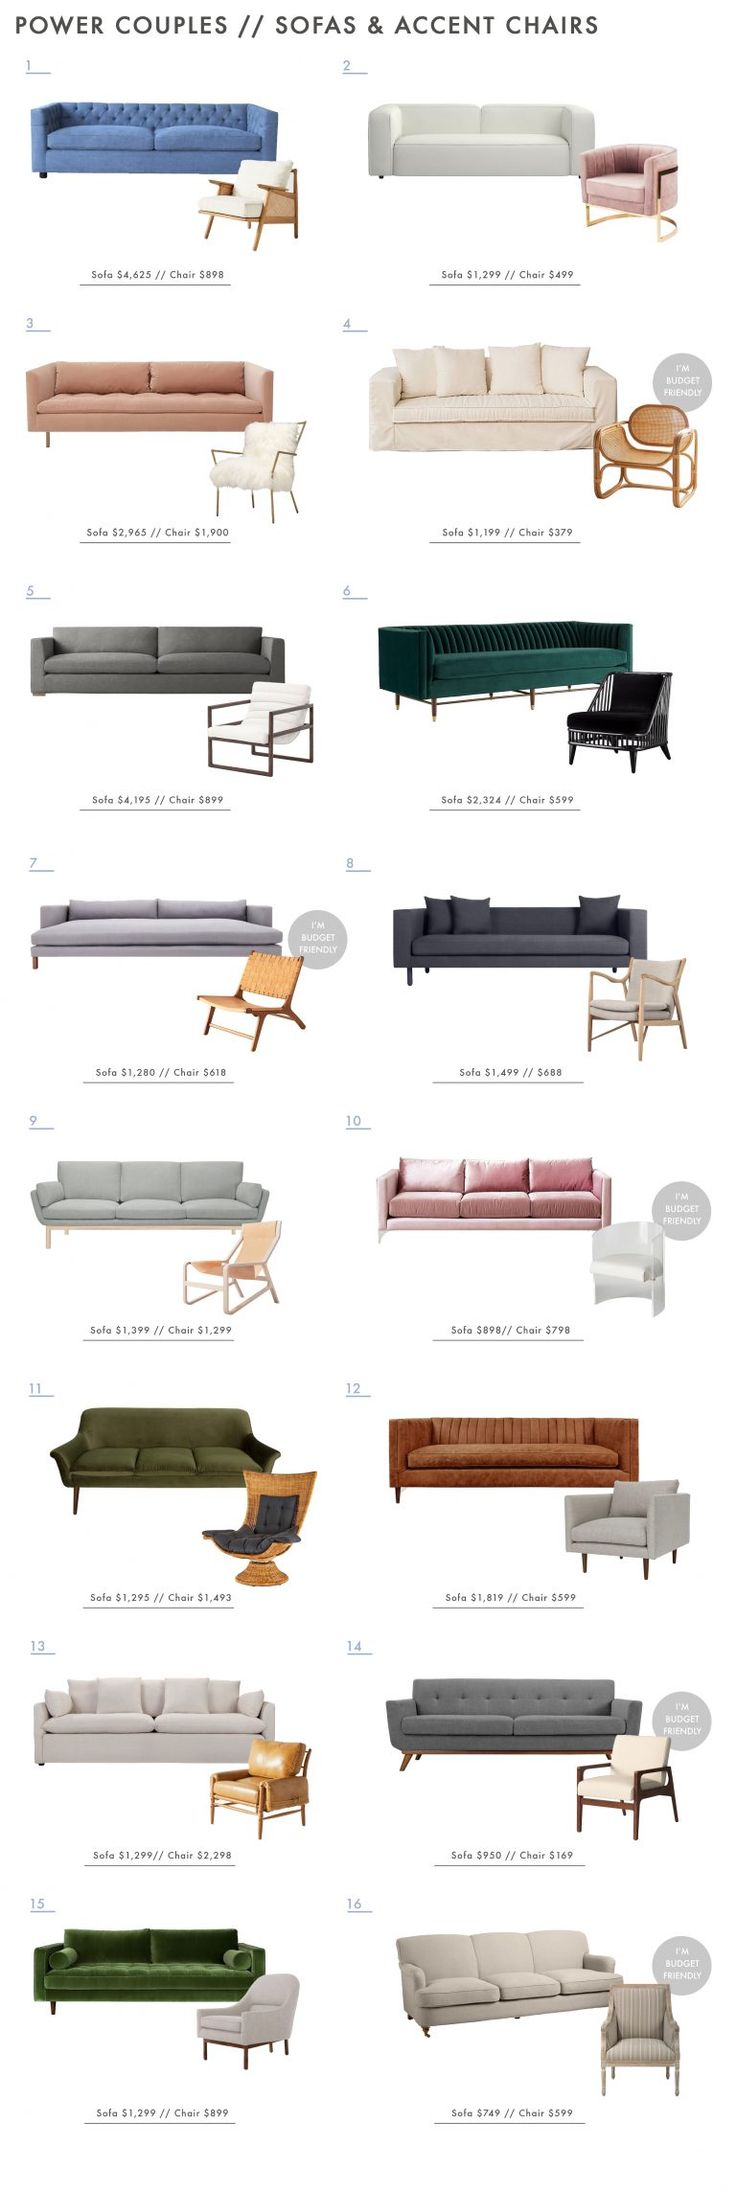 Power Couples: Sofas & Accent Chairs + a few rules